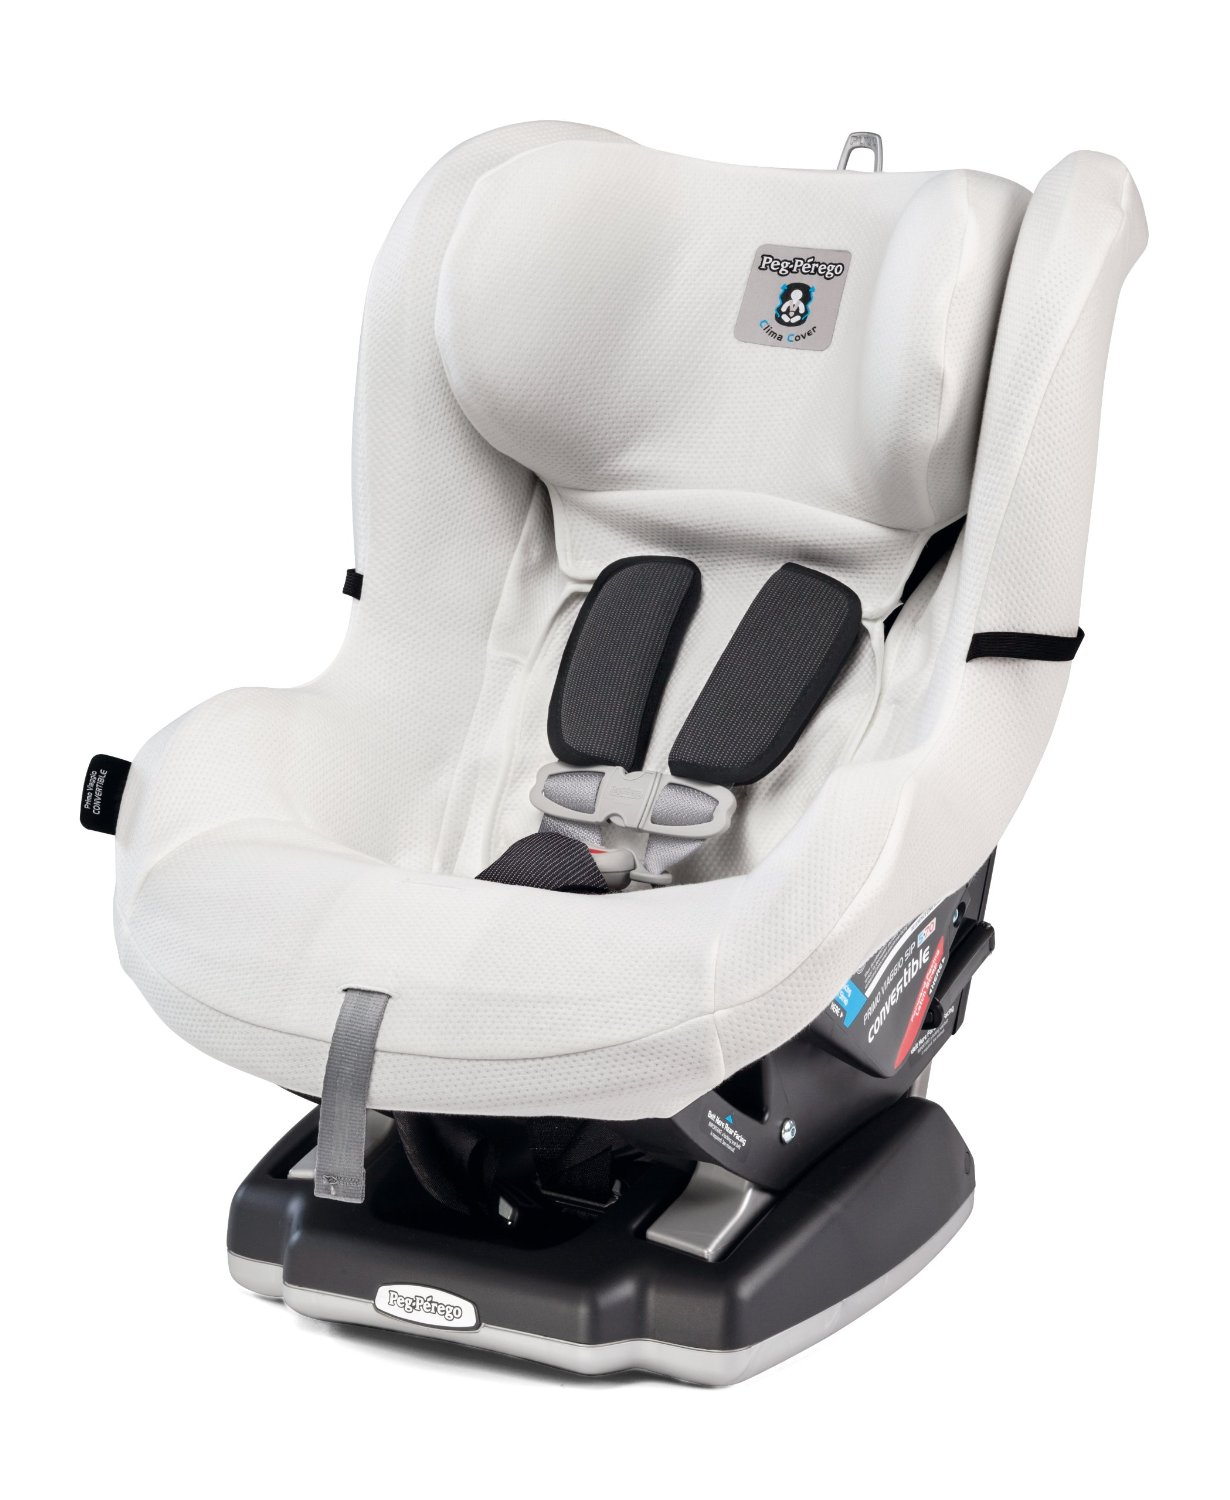 Catblog The Most Trusted Source For Car Seat Reviews Ratings Deals News